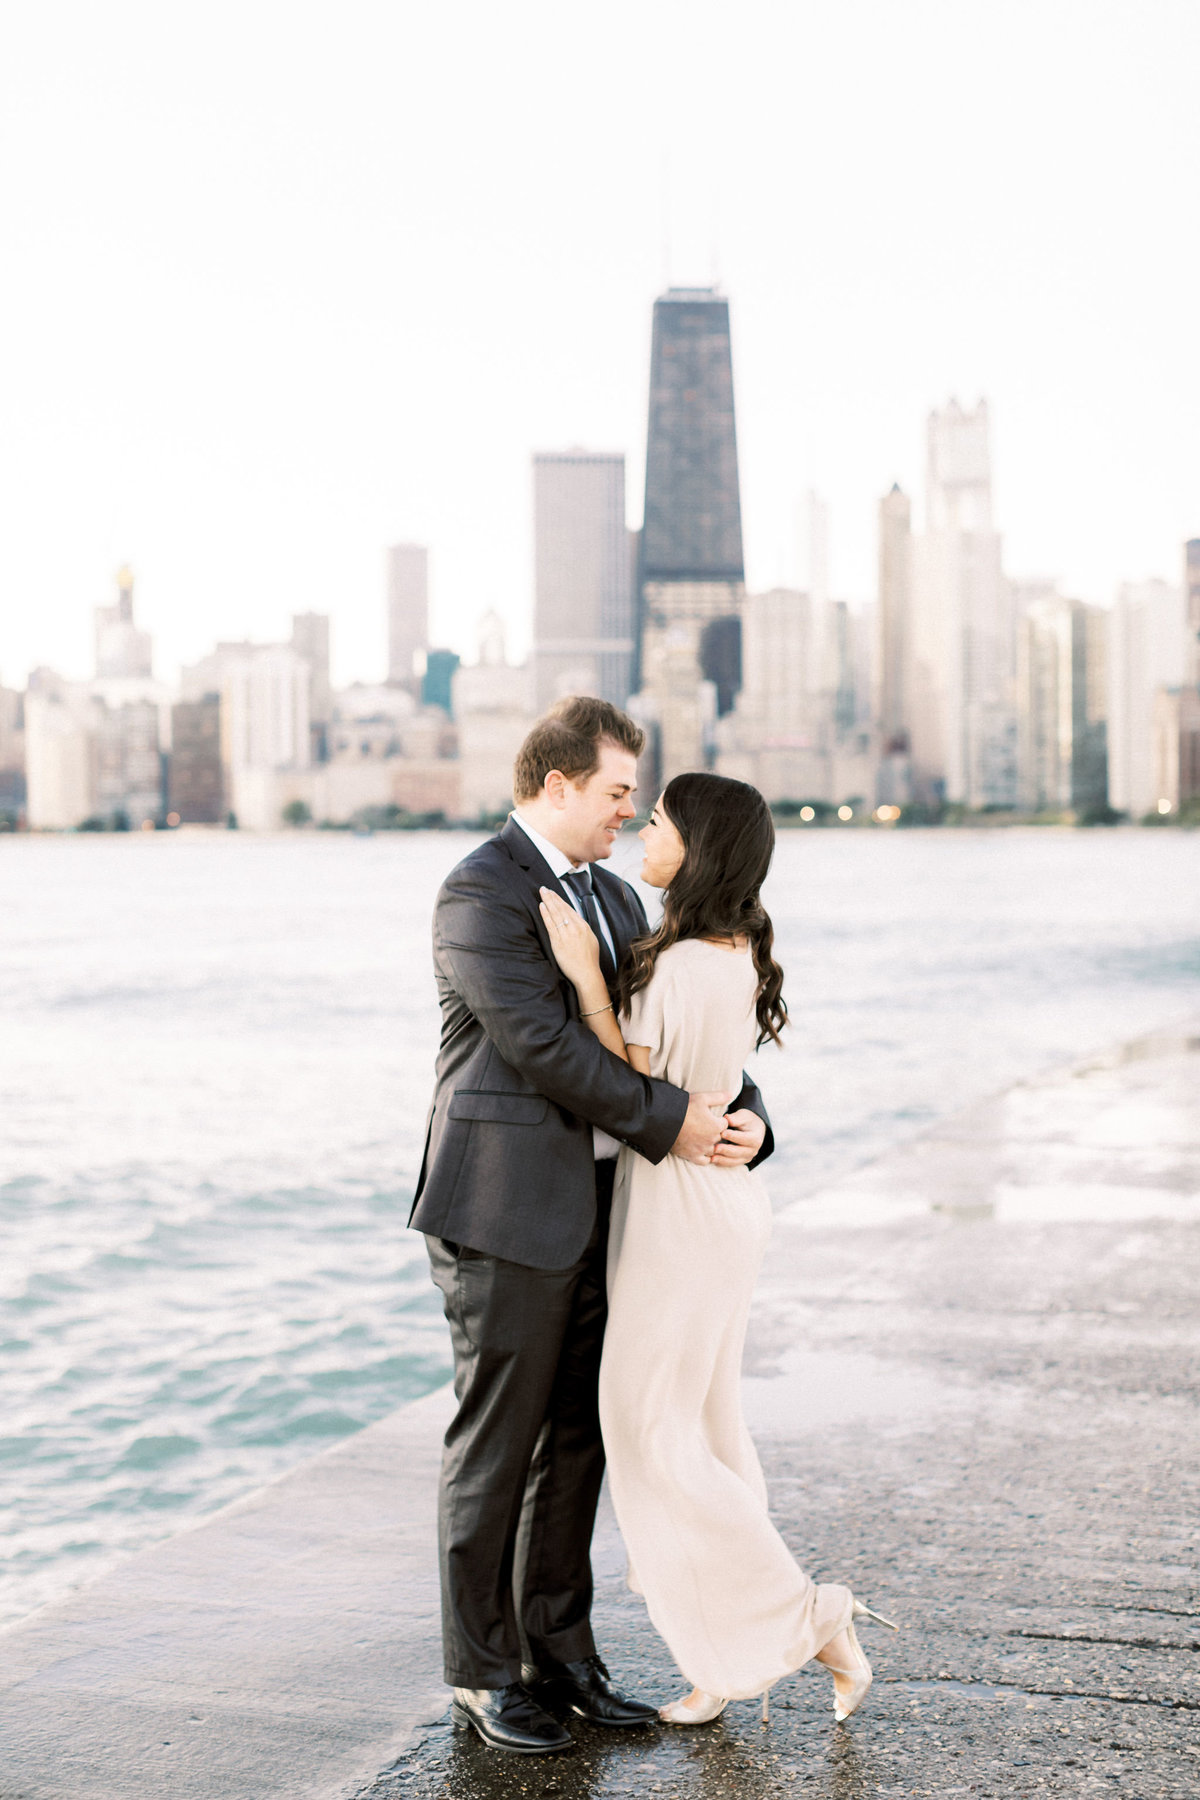 TiffaneyChildsPhotography-ChicagoWeddingPhotographer-Frankie+Brian-NorthAvenueBeach&RiverwalkEngagementSession-14